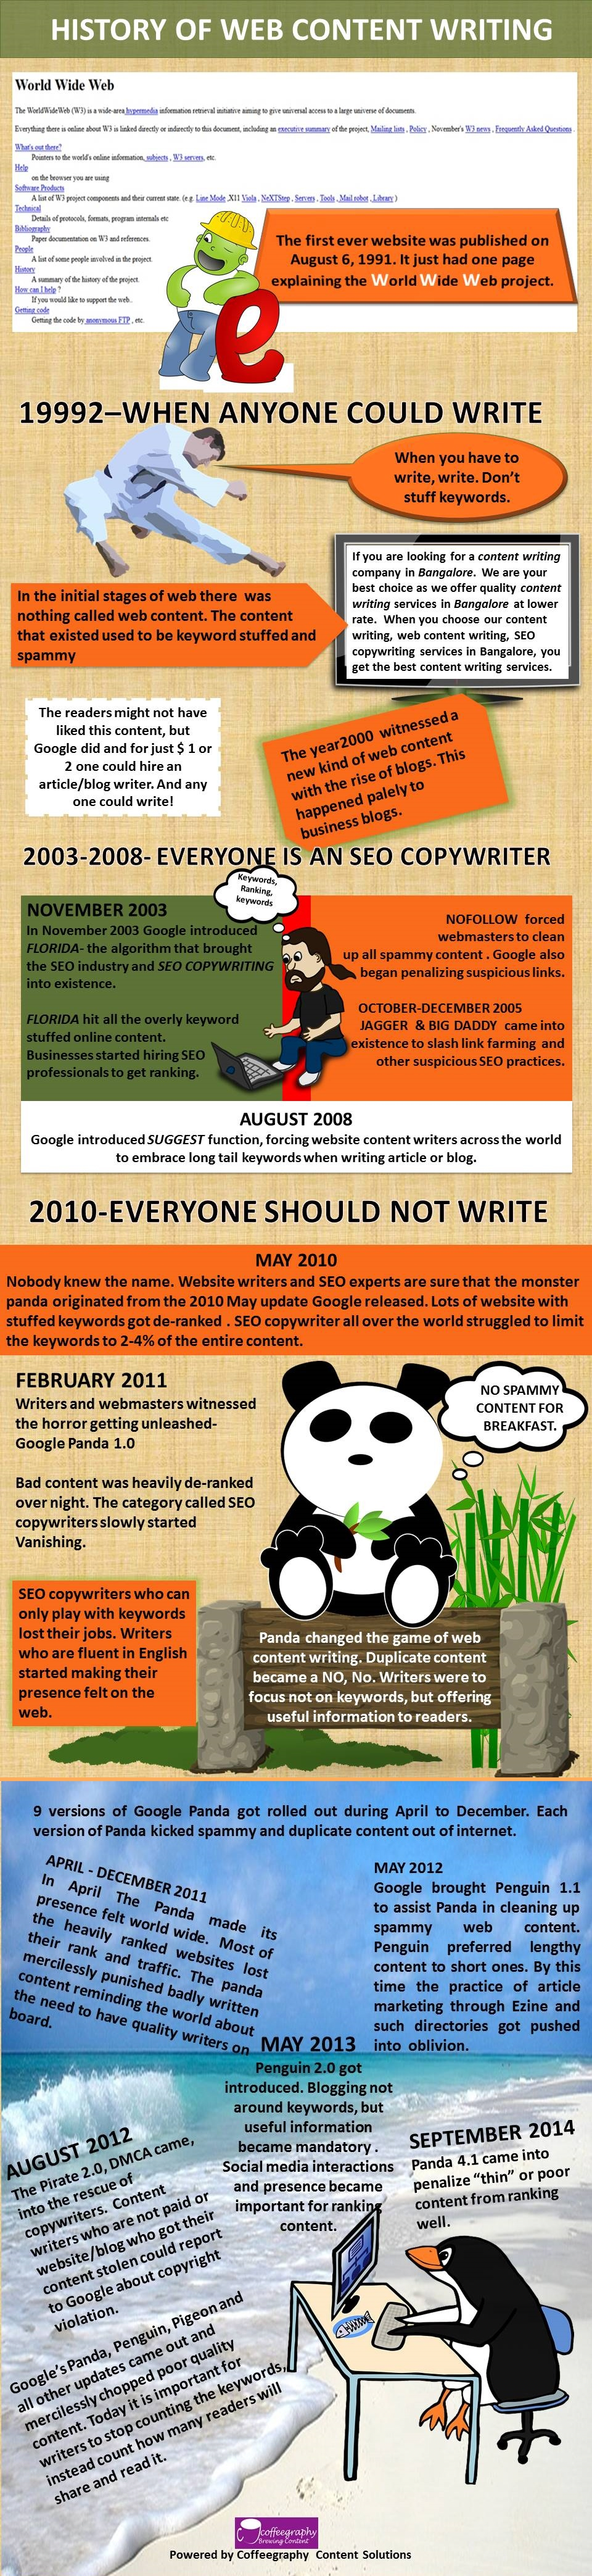 history of web content writing